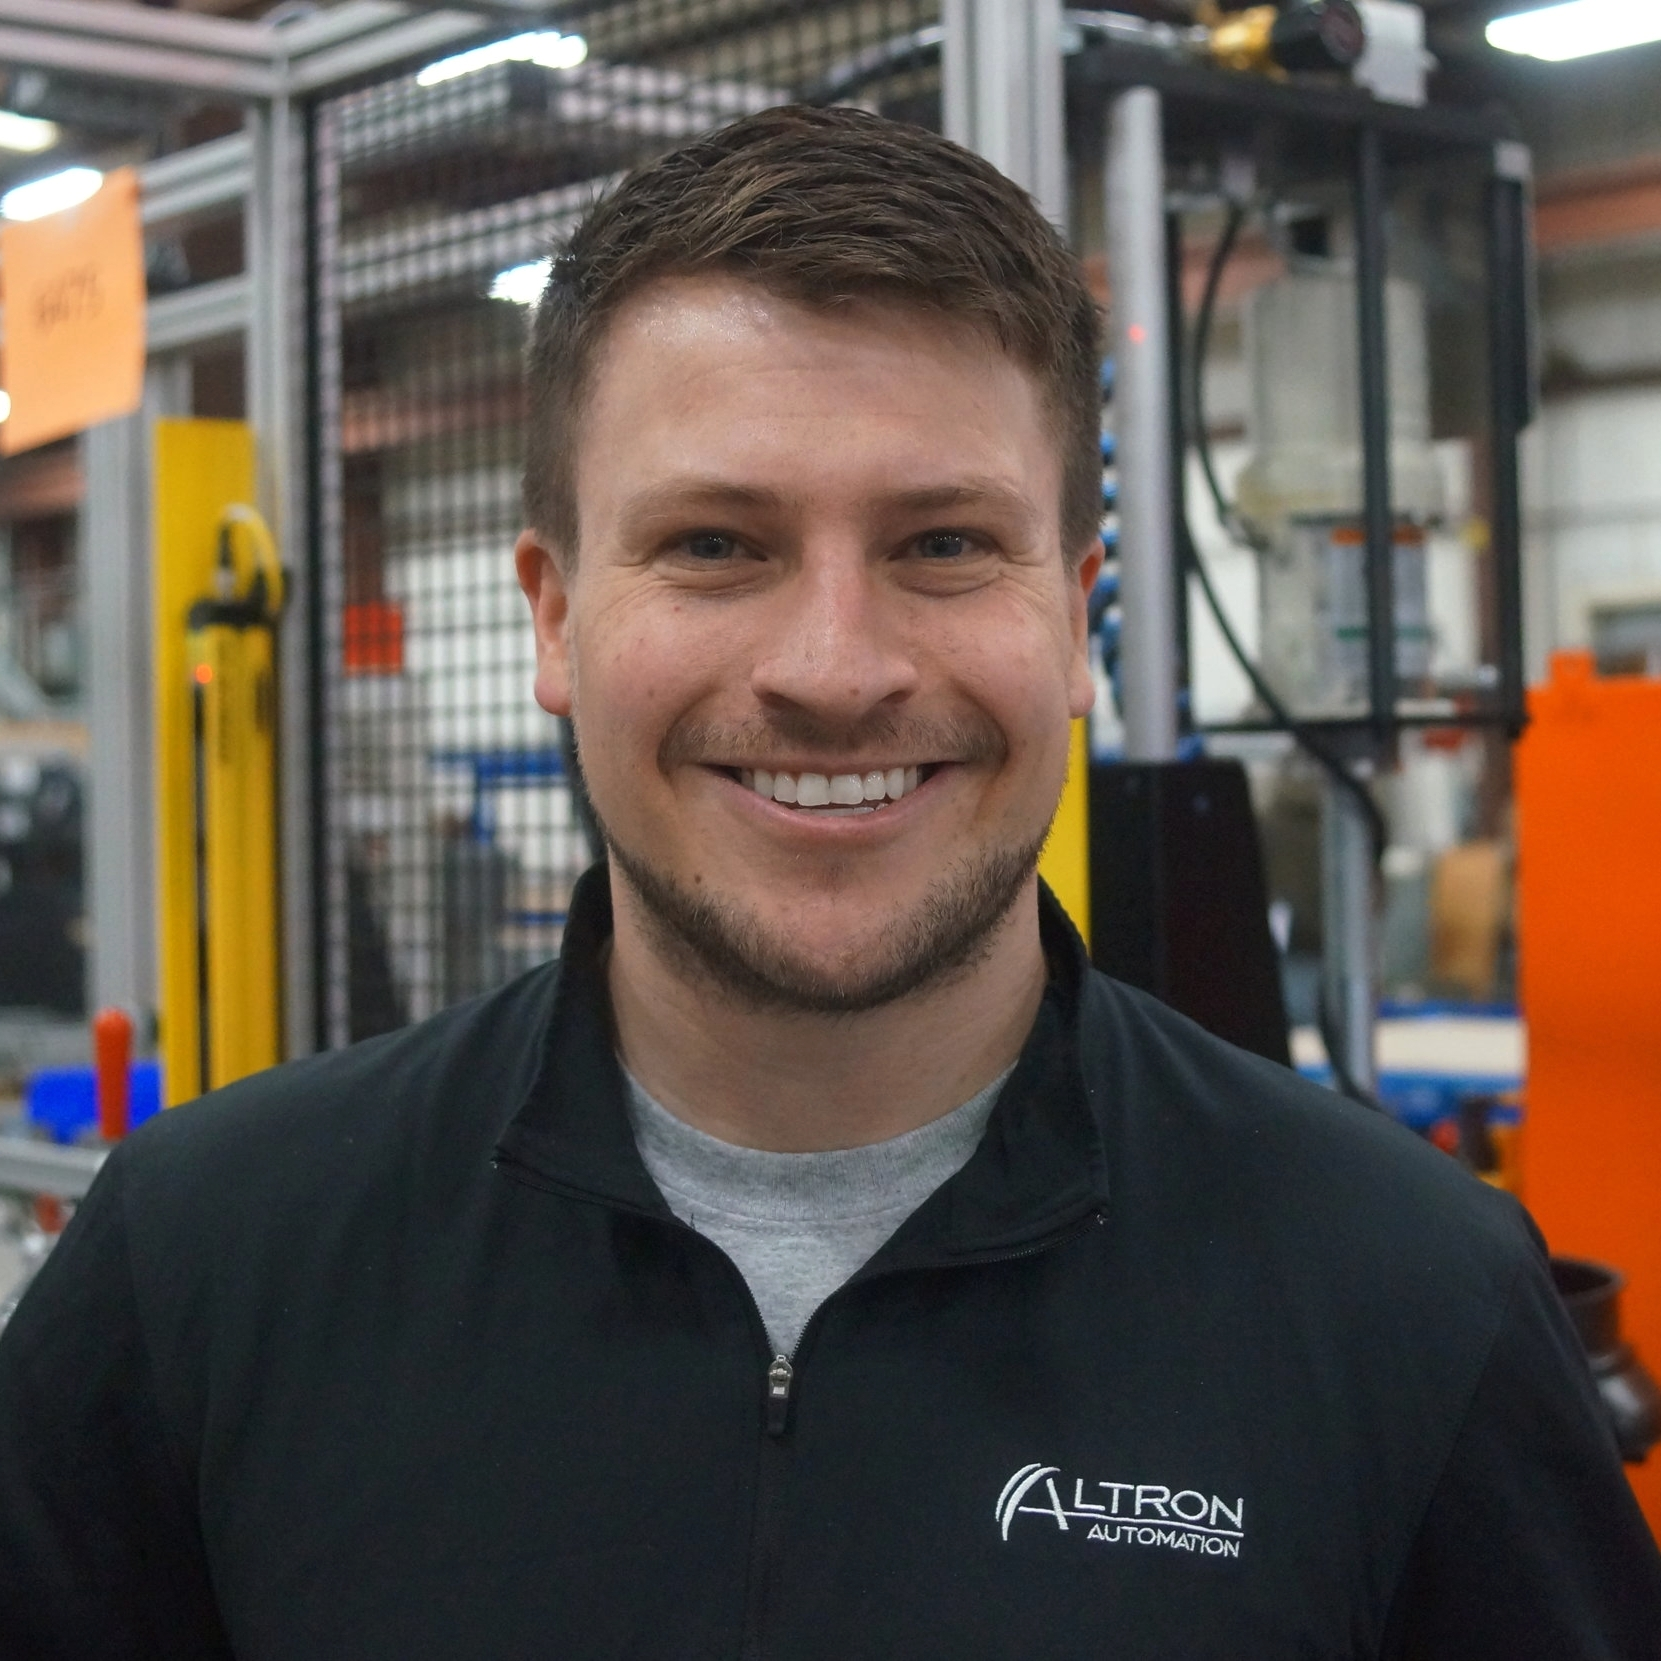 Tyler LaCombe - Director of Operations   Tyler has 9 years of experience in both high volume and design & build manufacturing, including 6 years at Altron Automation & its subsidiary companies. He has held a wide array of responsibilities in many different business disciplines including leadership positions in Sales, Manufacturing, Systems Engineering, and, most recently, Materials Management. Tyler holds a B.A. of Sports Management from the University of Michigan.